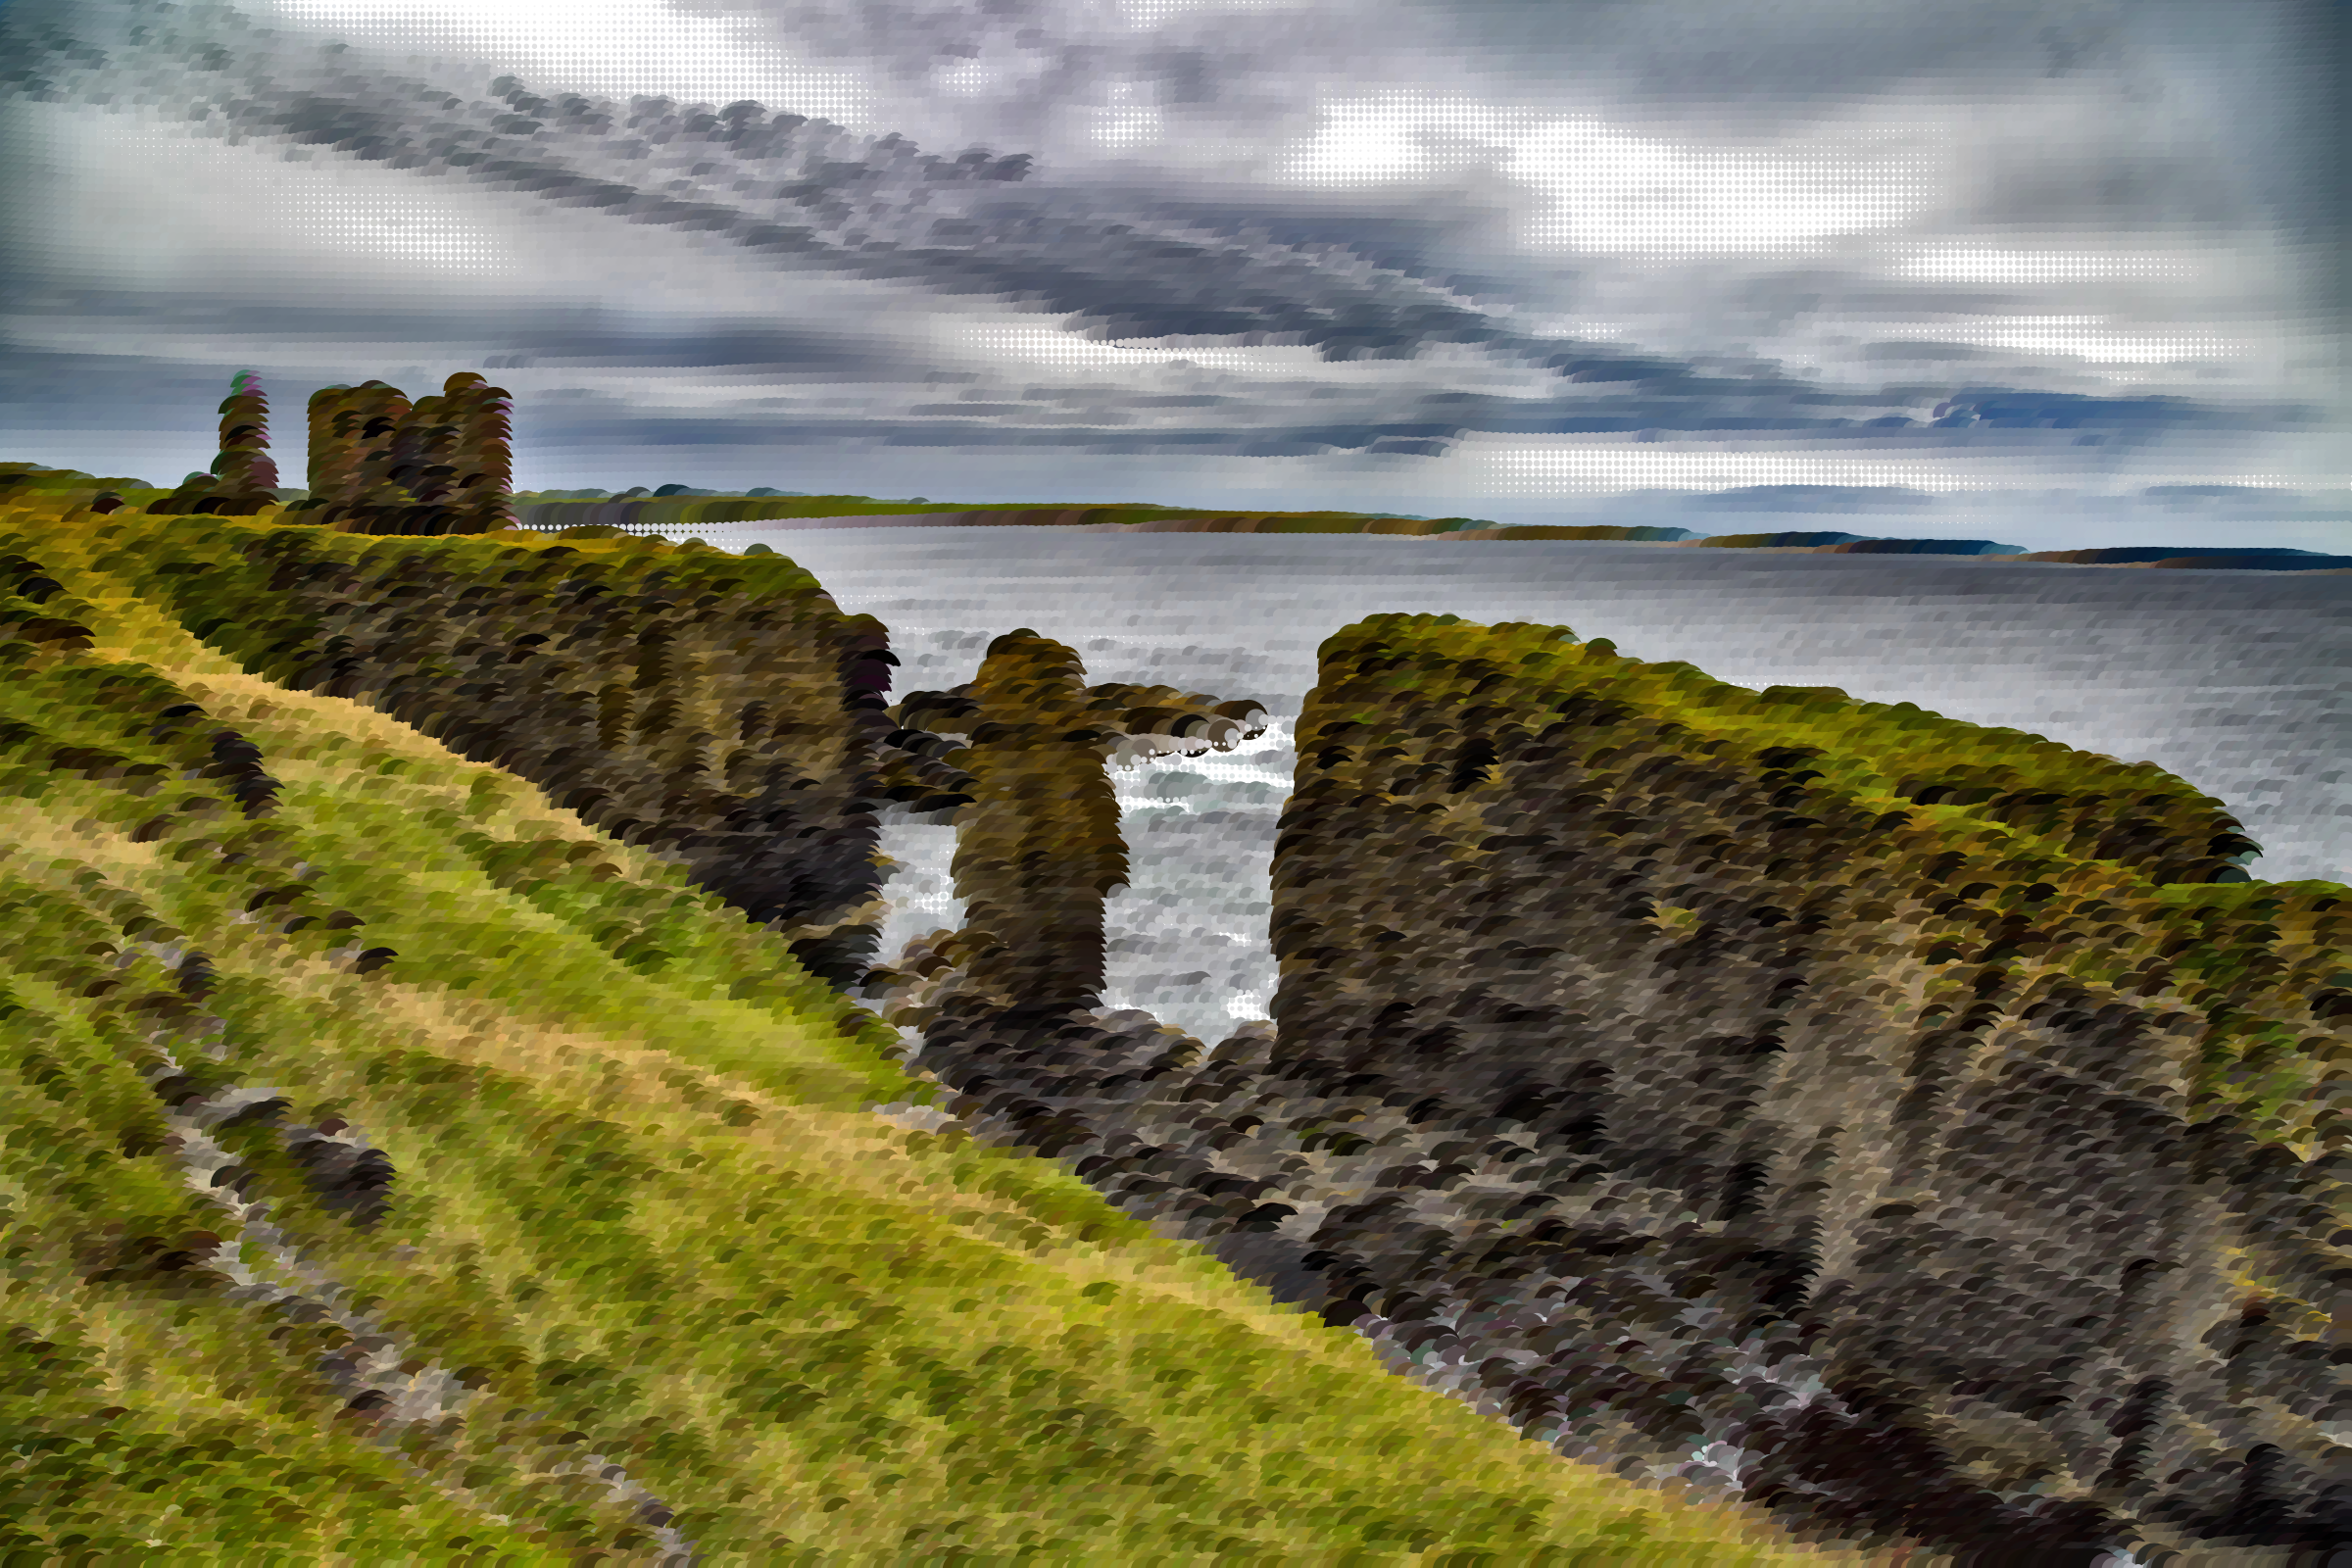 Surreal Sinclair Castle Caithness Scotland by GDJ